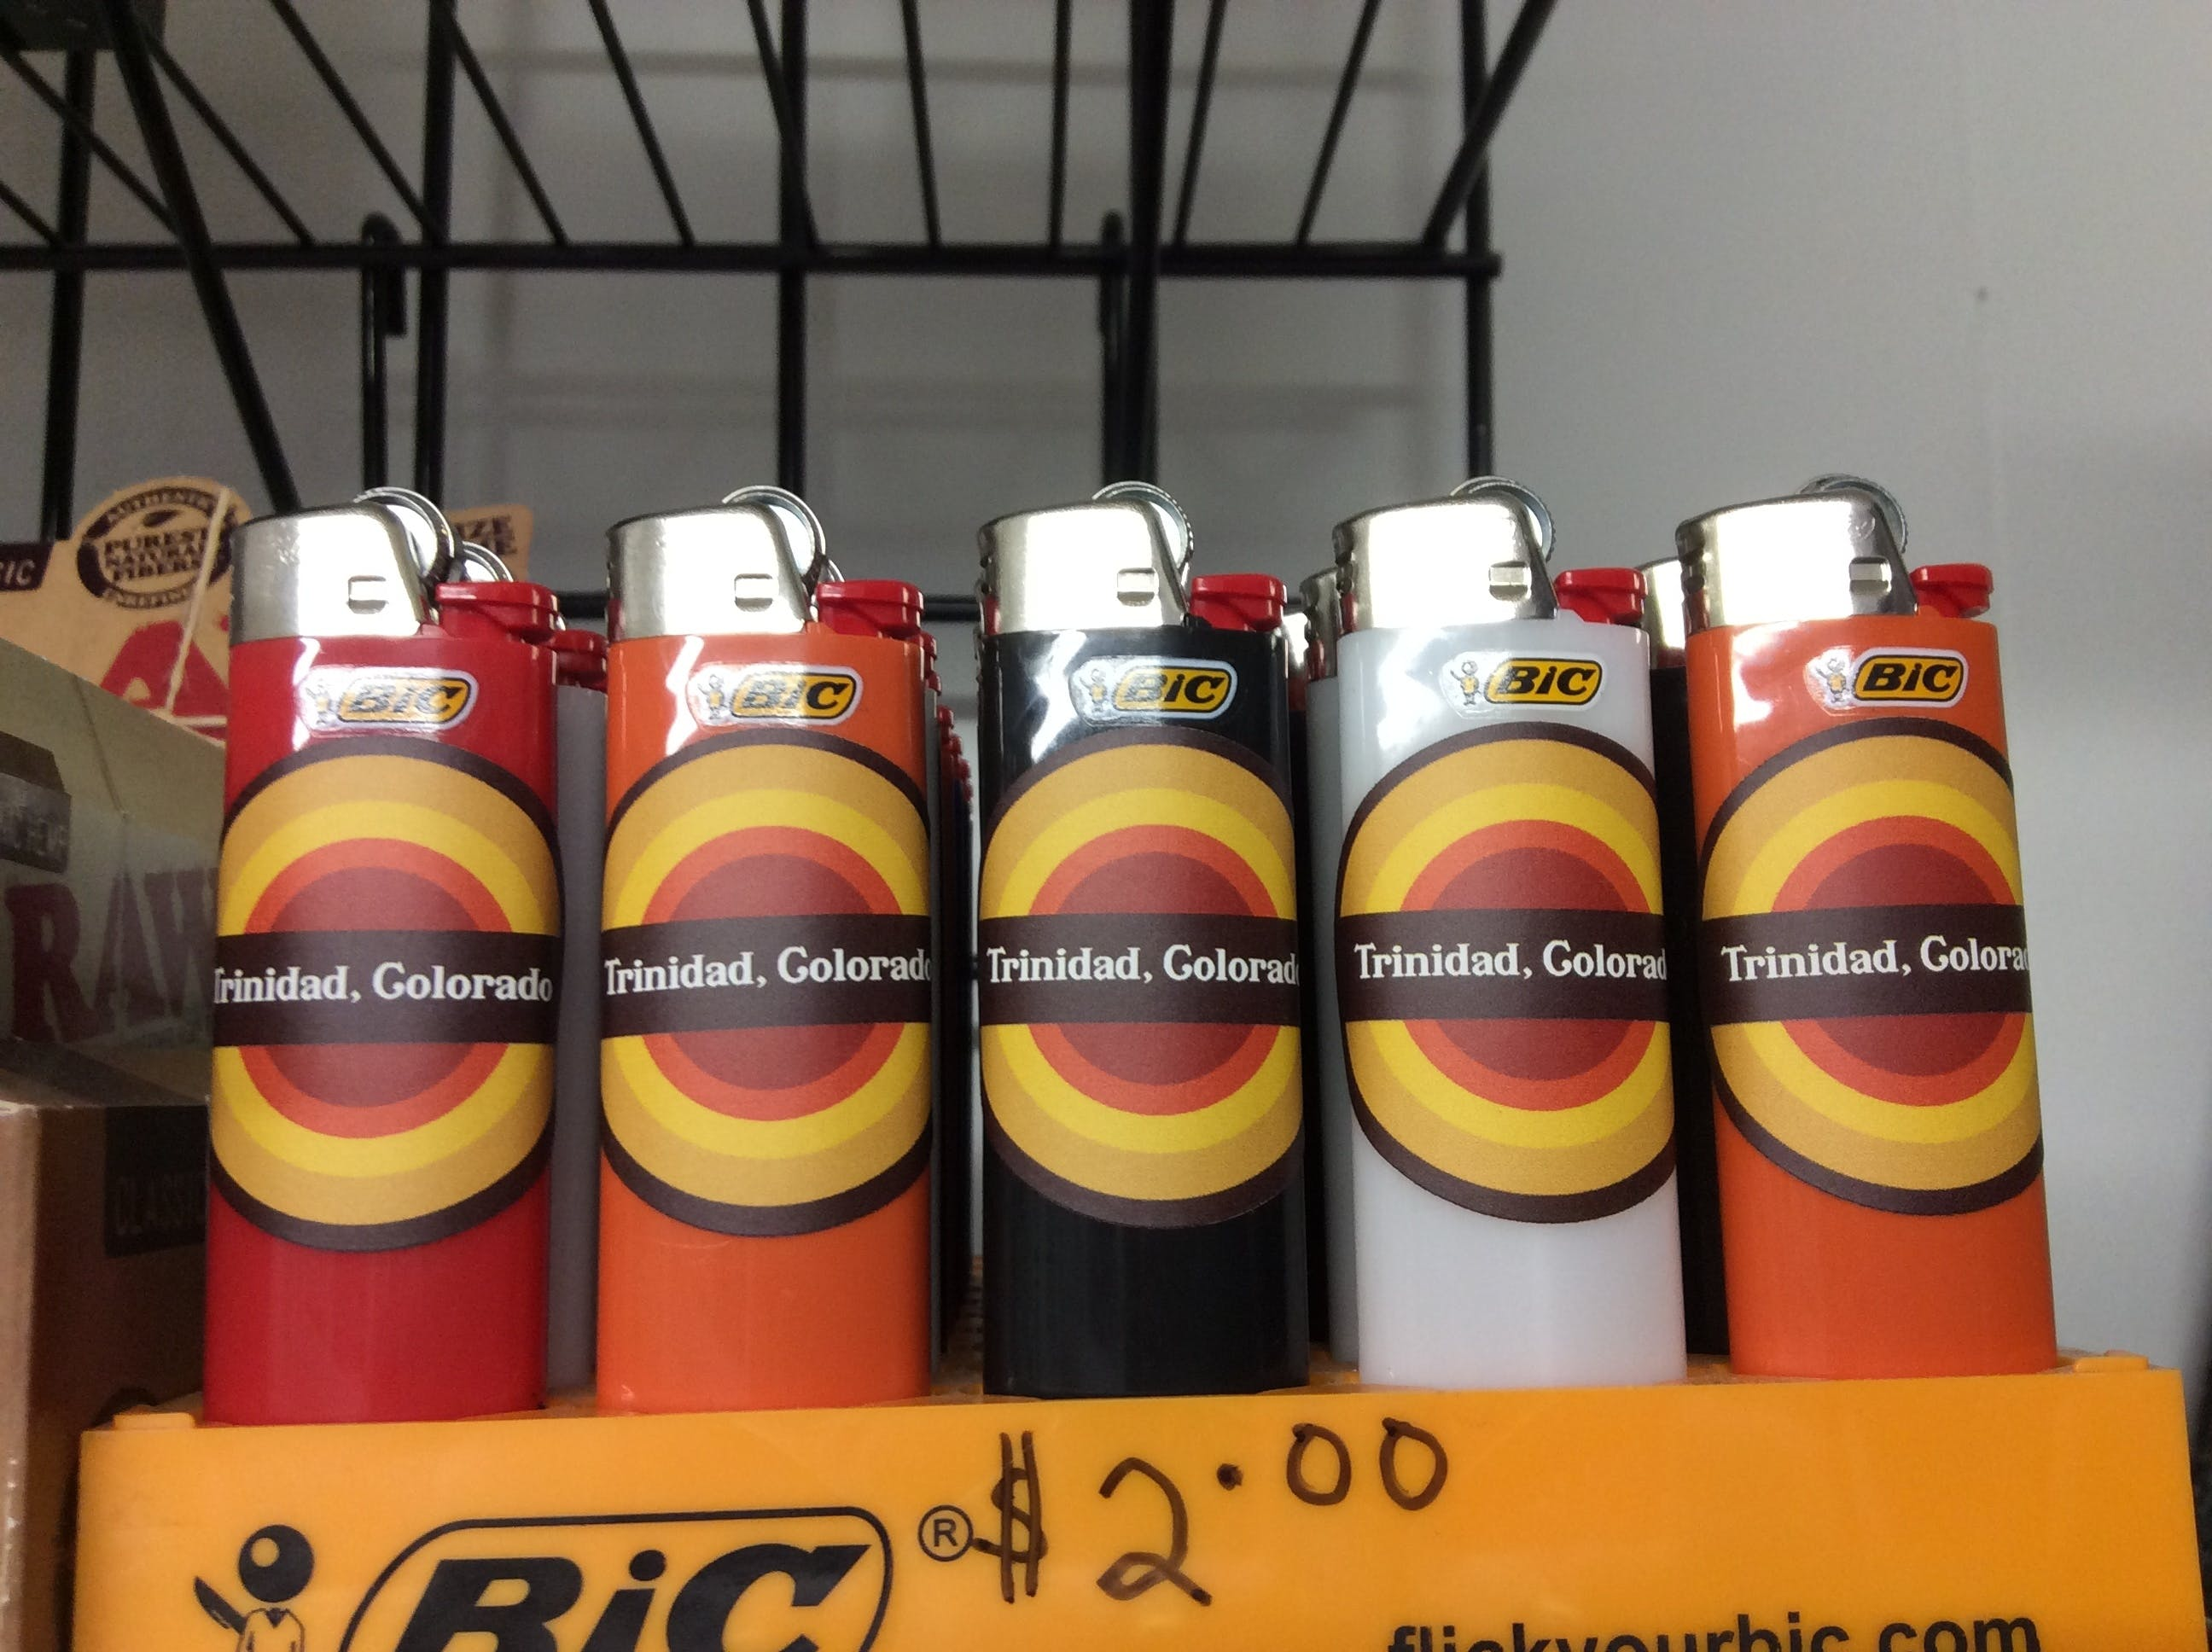 marijuana-dispensaries-25-king-in-los-angeles-bic-lighter